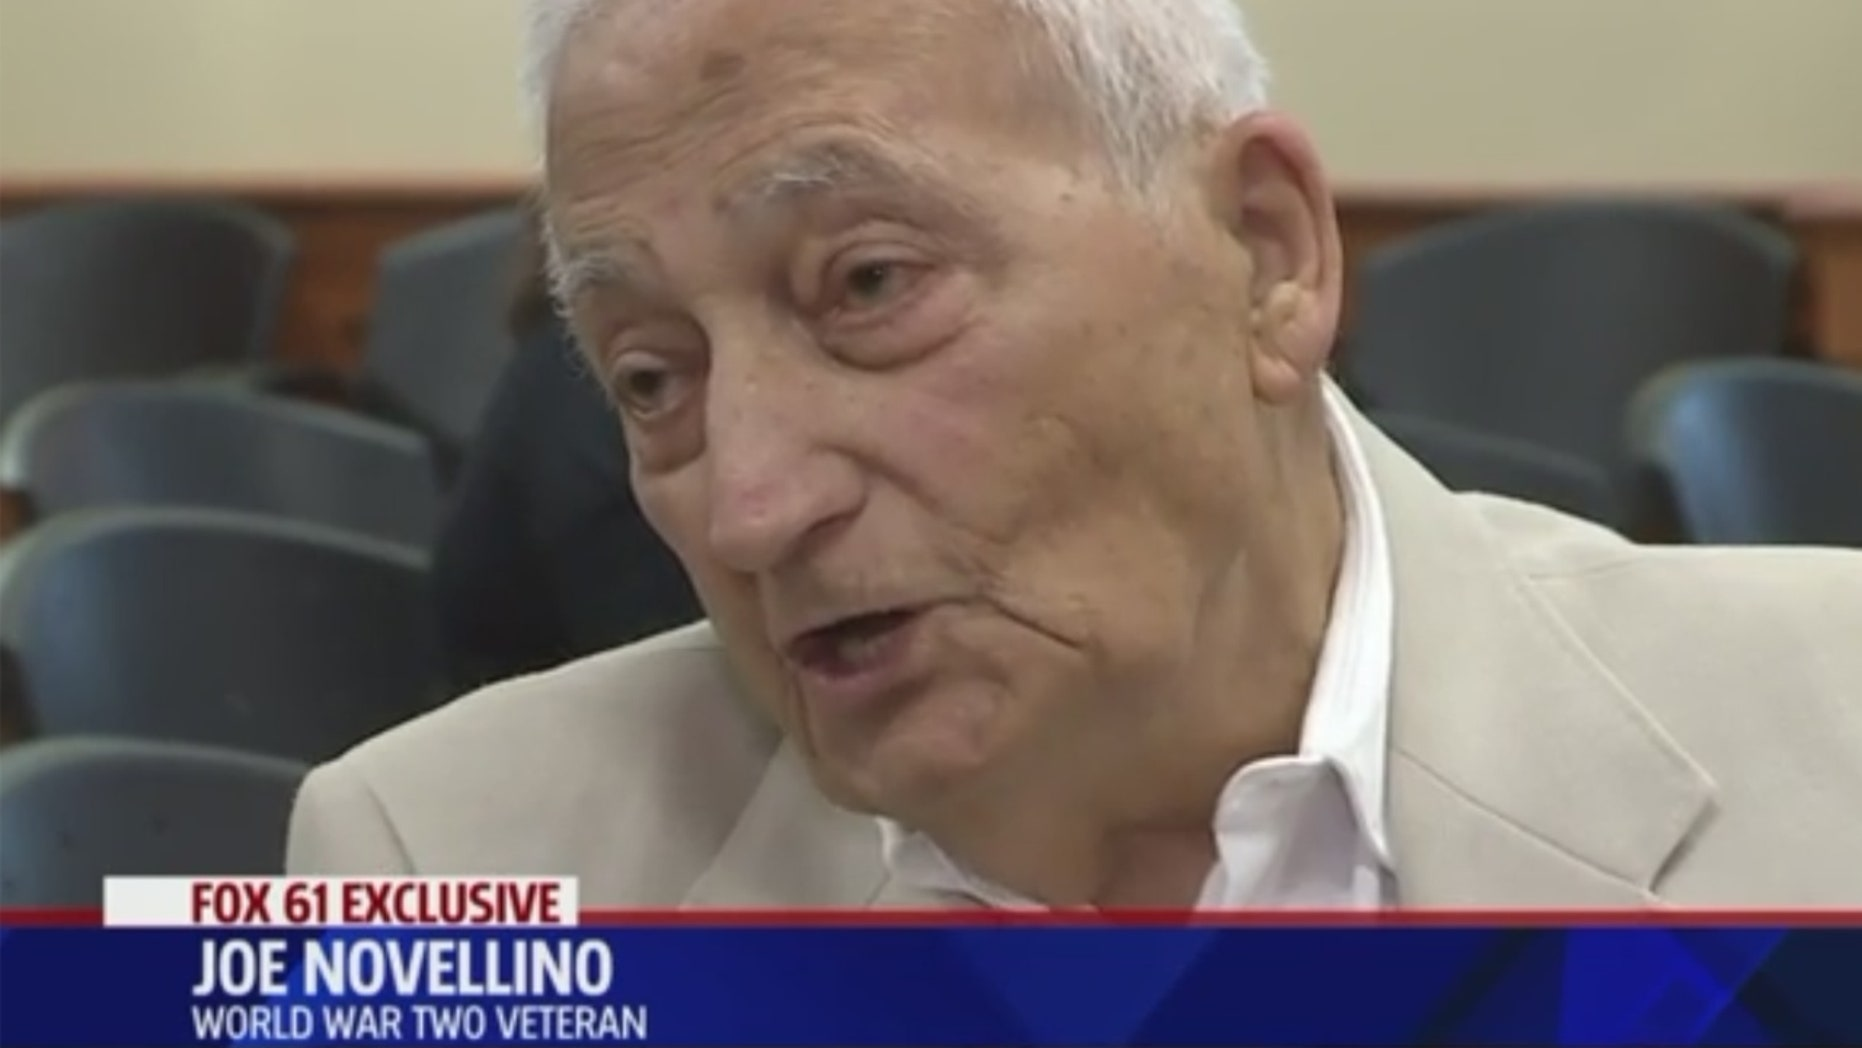 Connecticut veteran Joe Novellino, who got his medals back after they were stolen from his home.